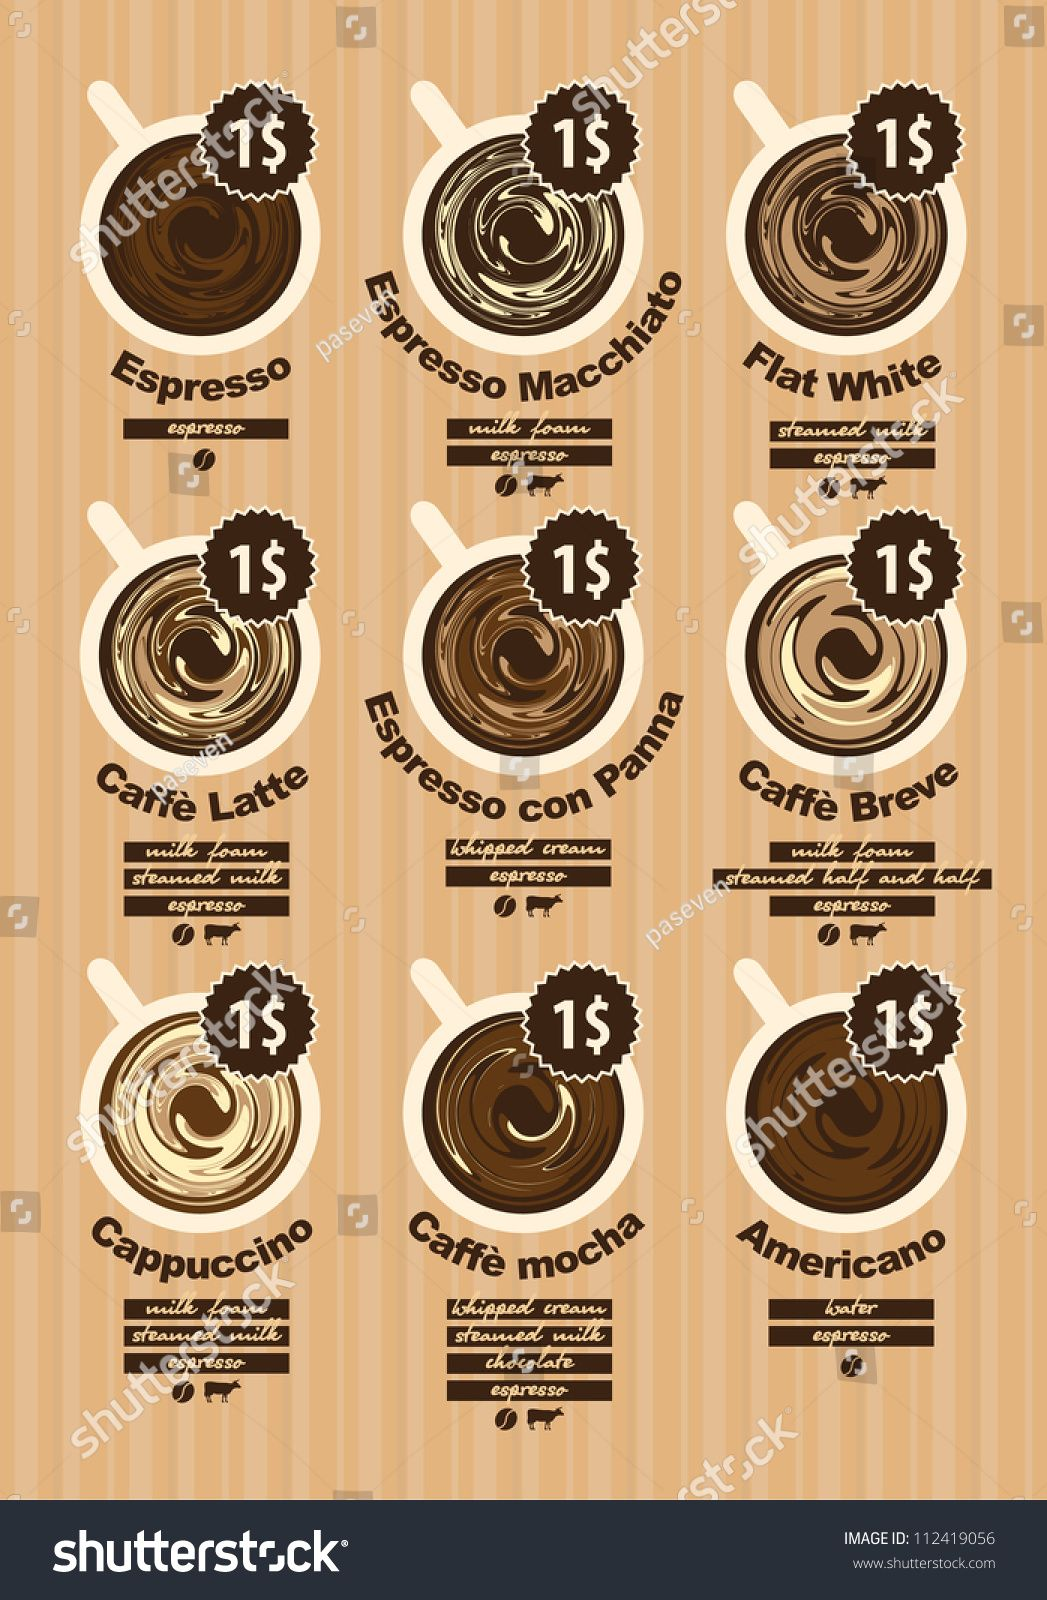 Pin By Coffee On Barista Tools And Accessories Coffee Reading Coffee Type Starbucks Coffee Beans